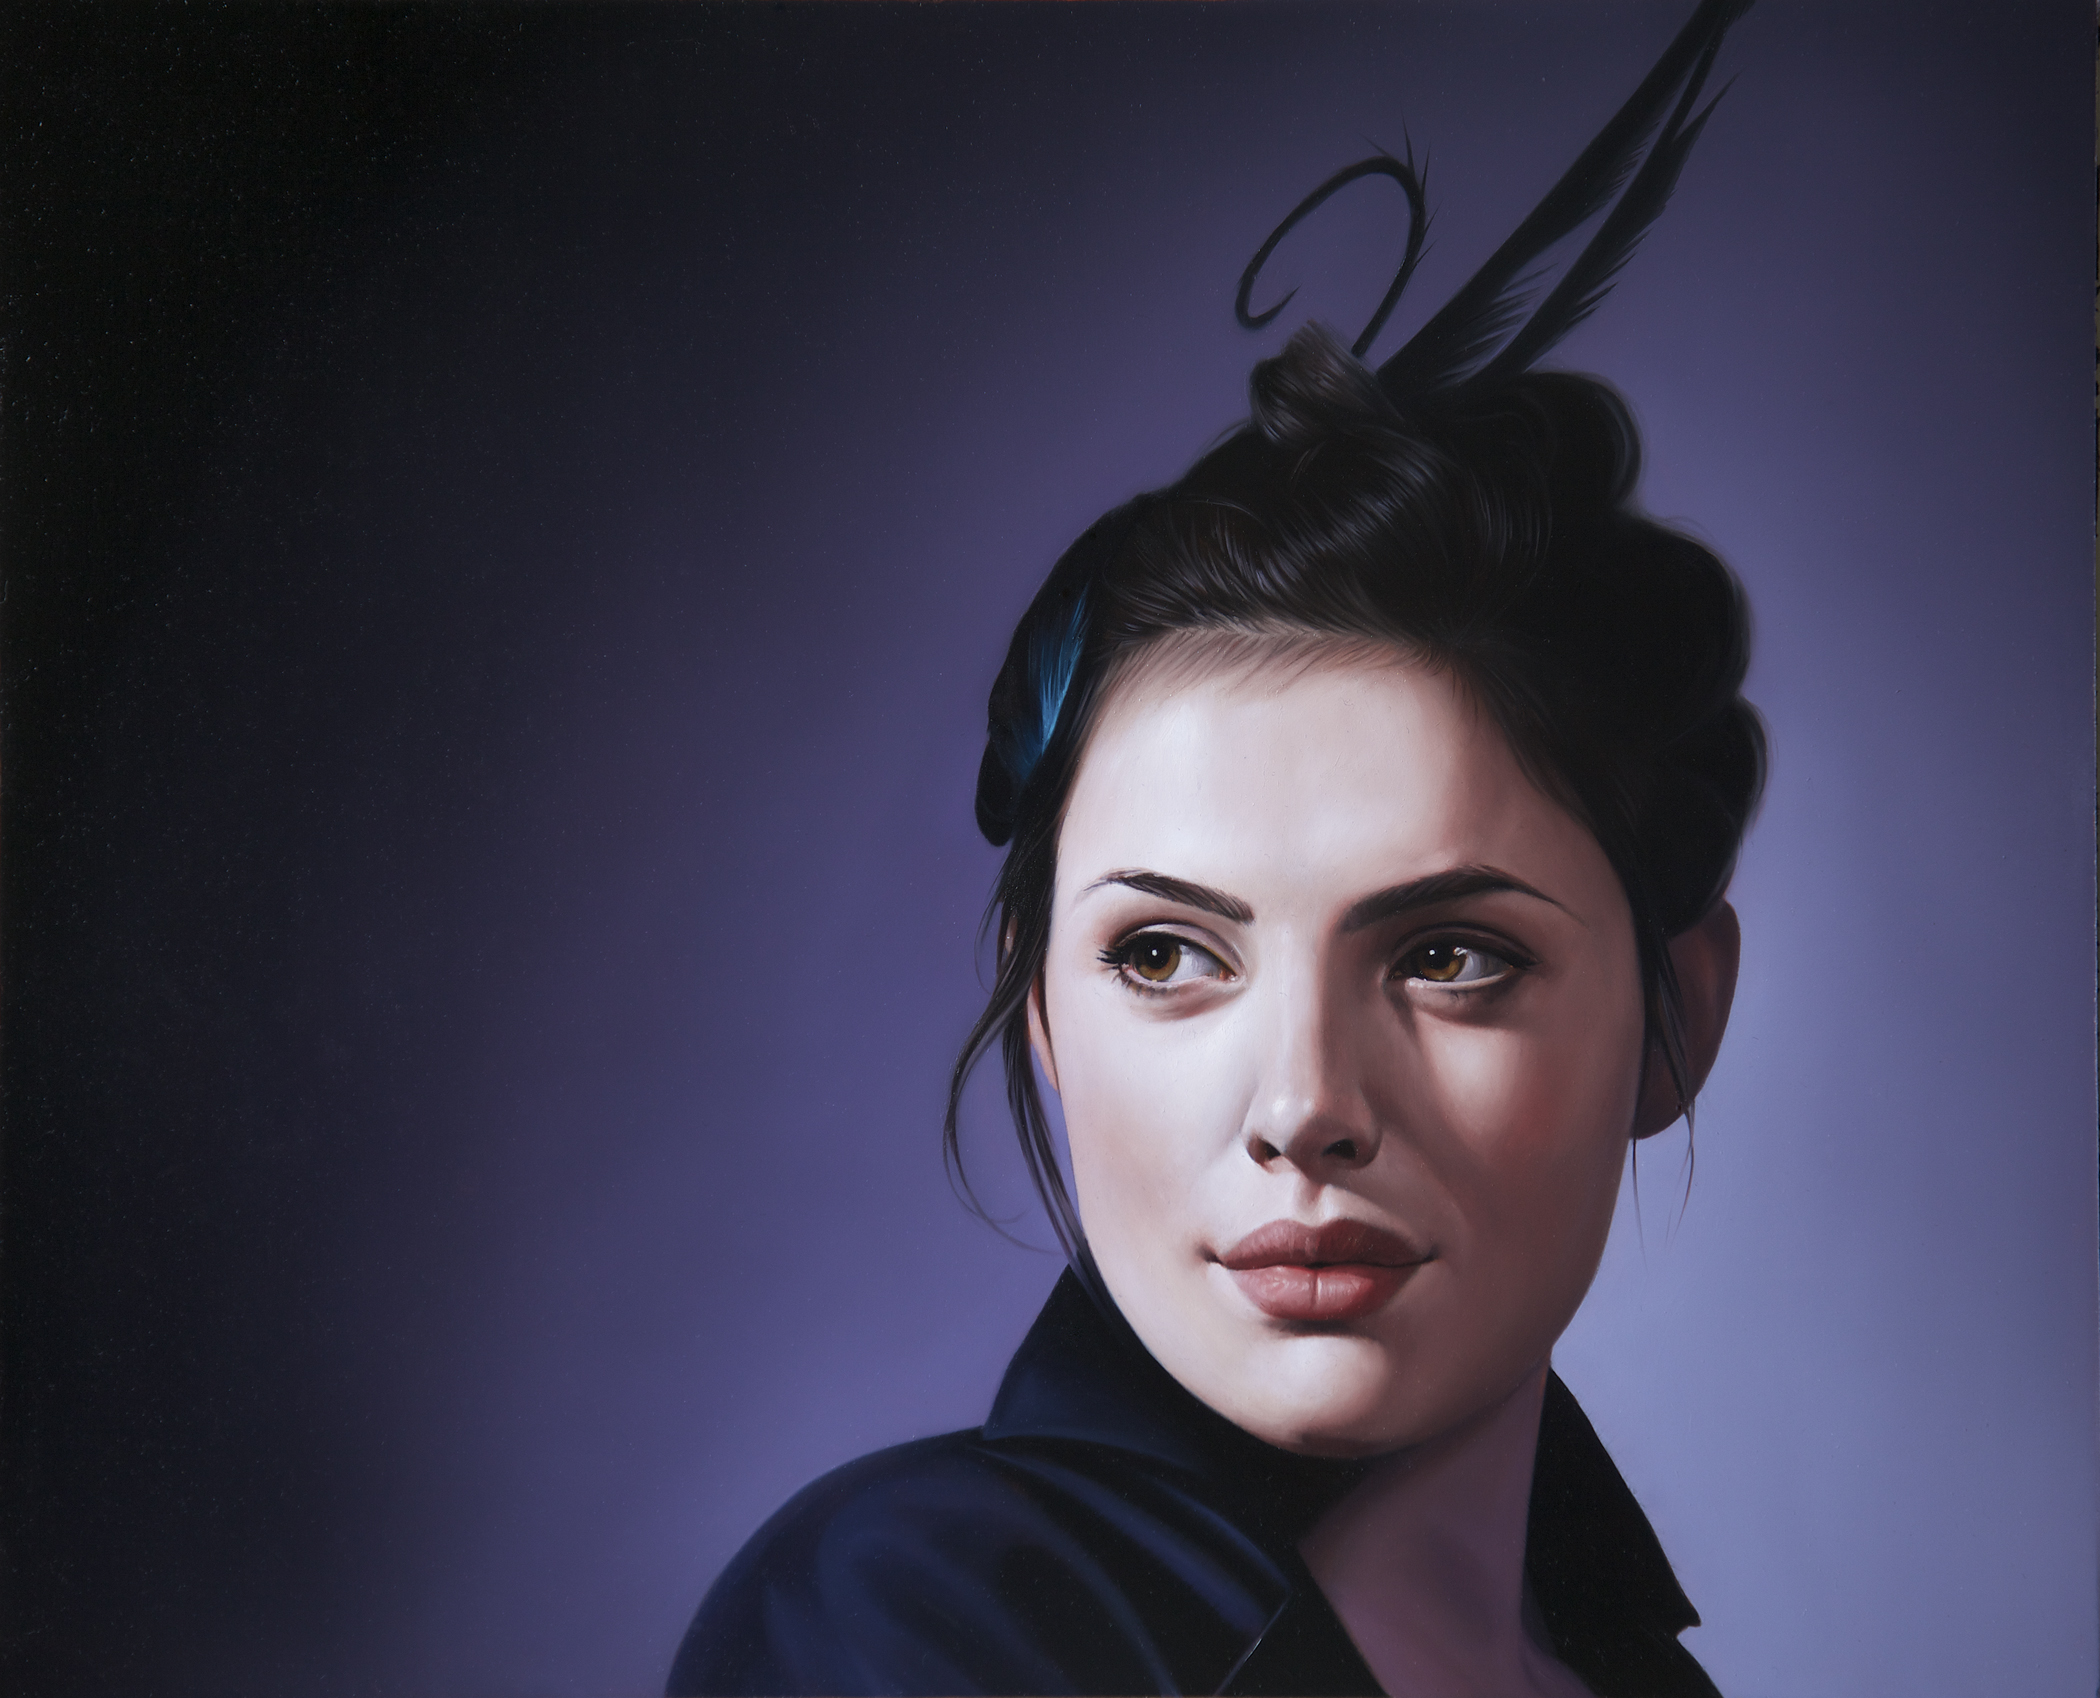 Belle De Nuit I   11 x 14 inches,   Oil on aluminium panel